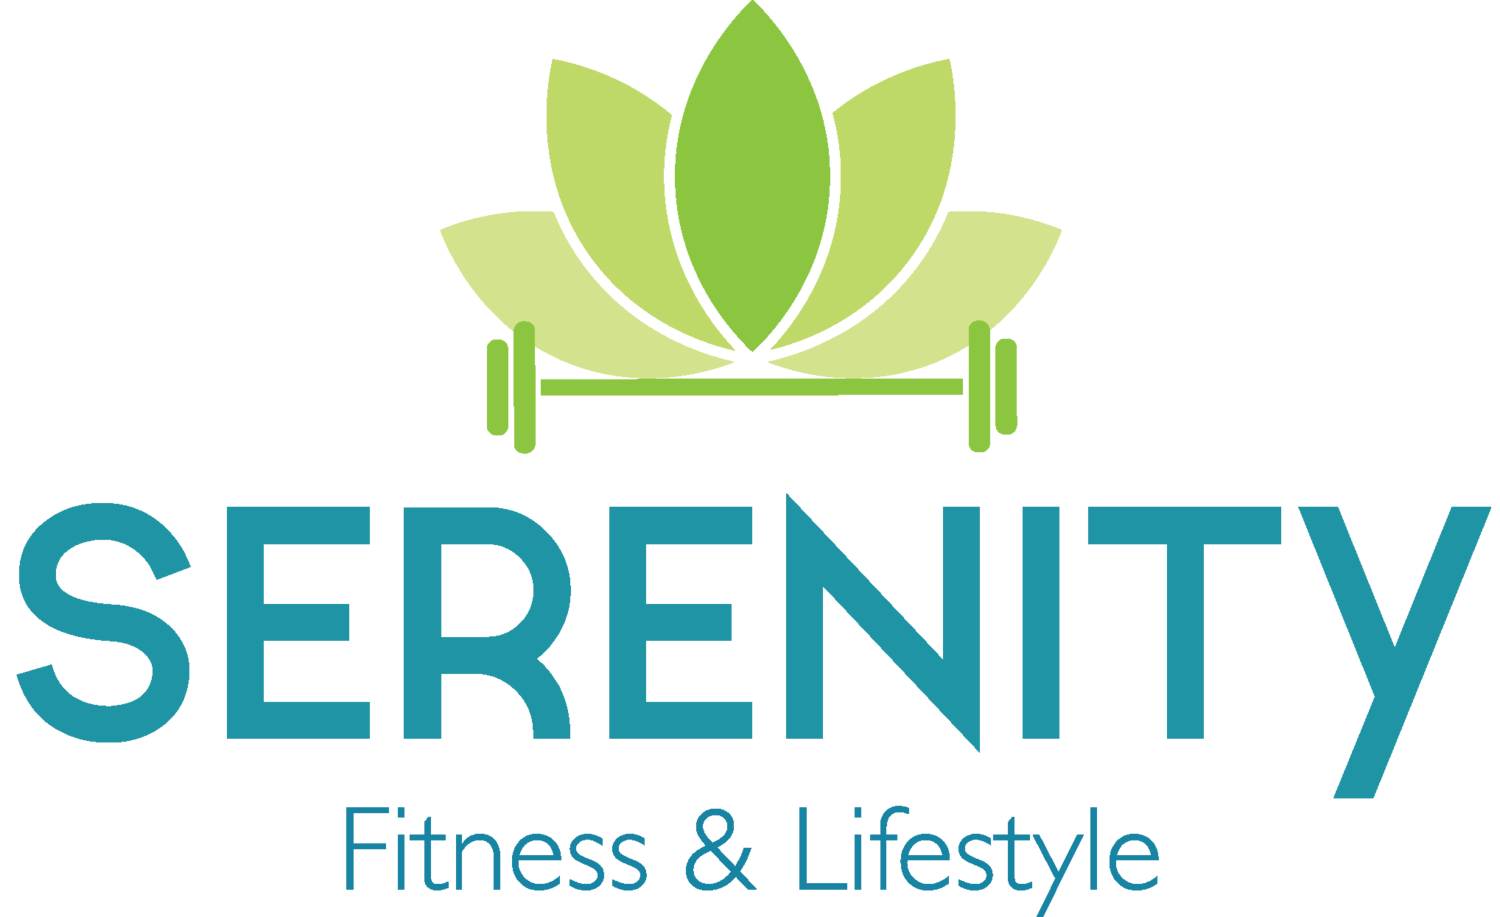 Serenity Fitness & Lifestyle